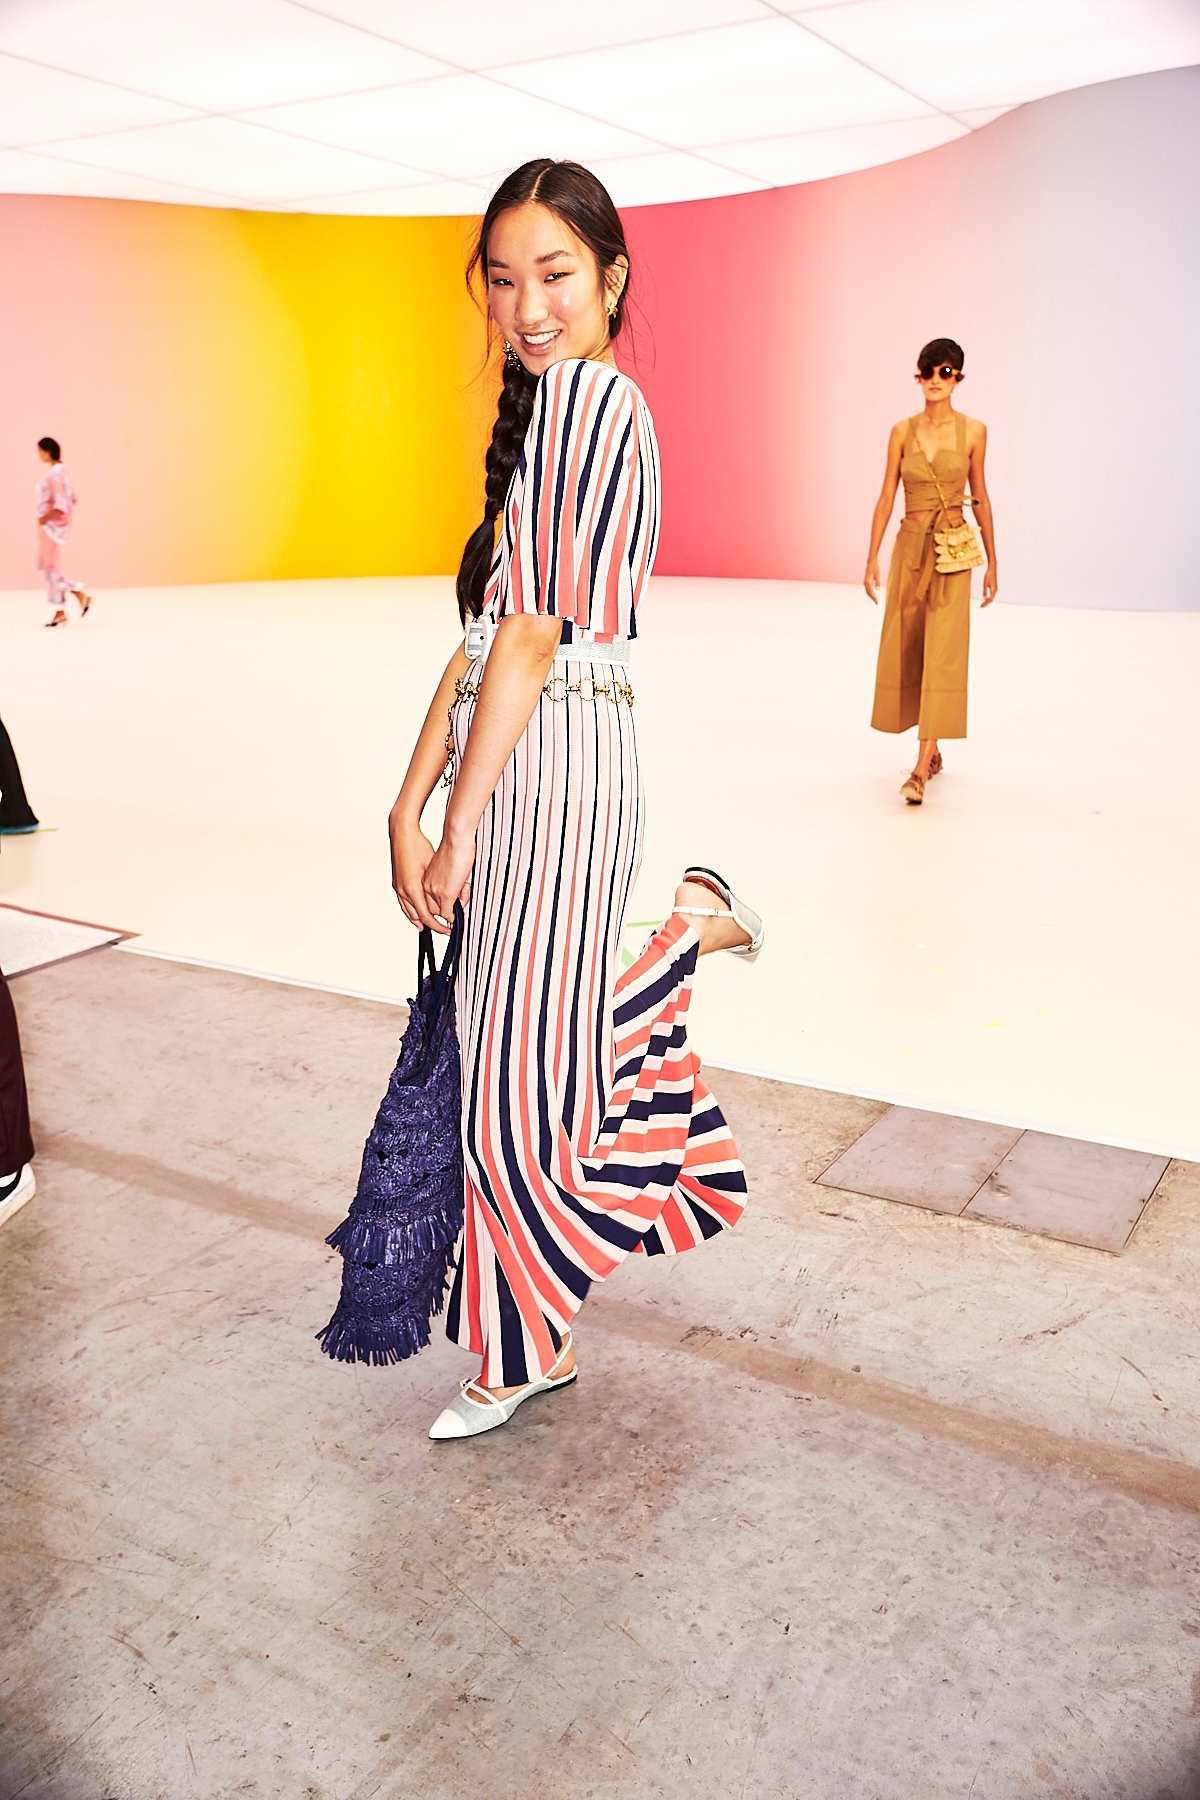 BEHIND THE SHOW RESORT READY TO WEAR 2022, THE POSTCARD